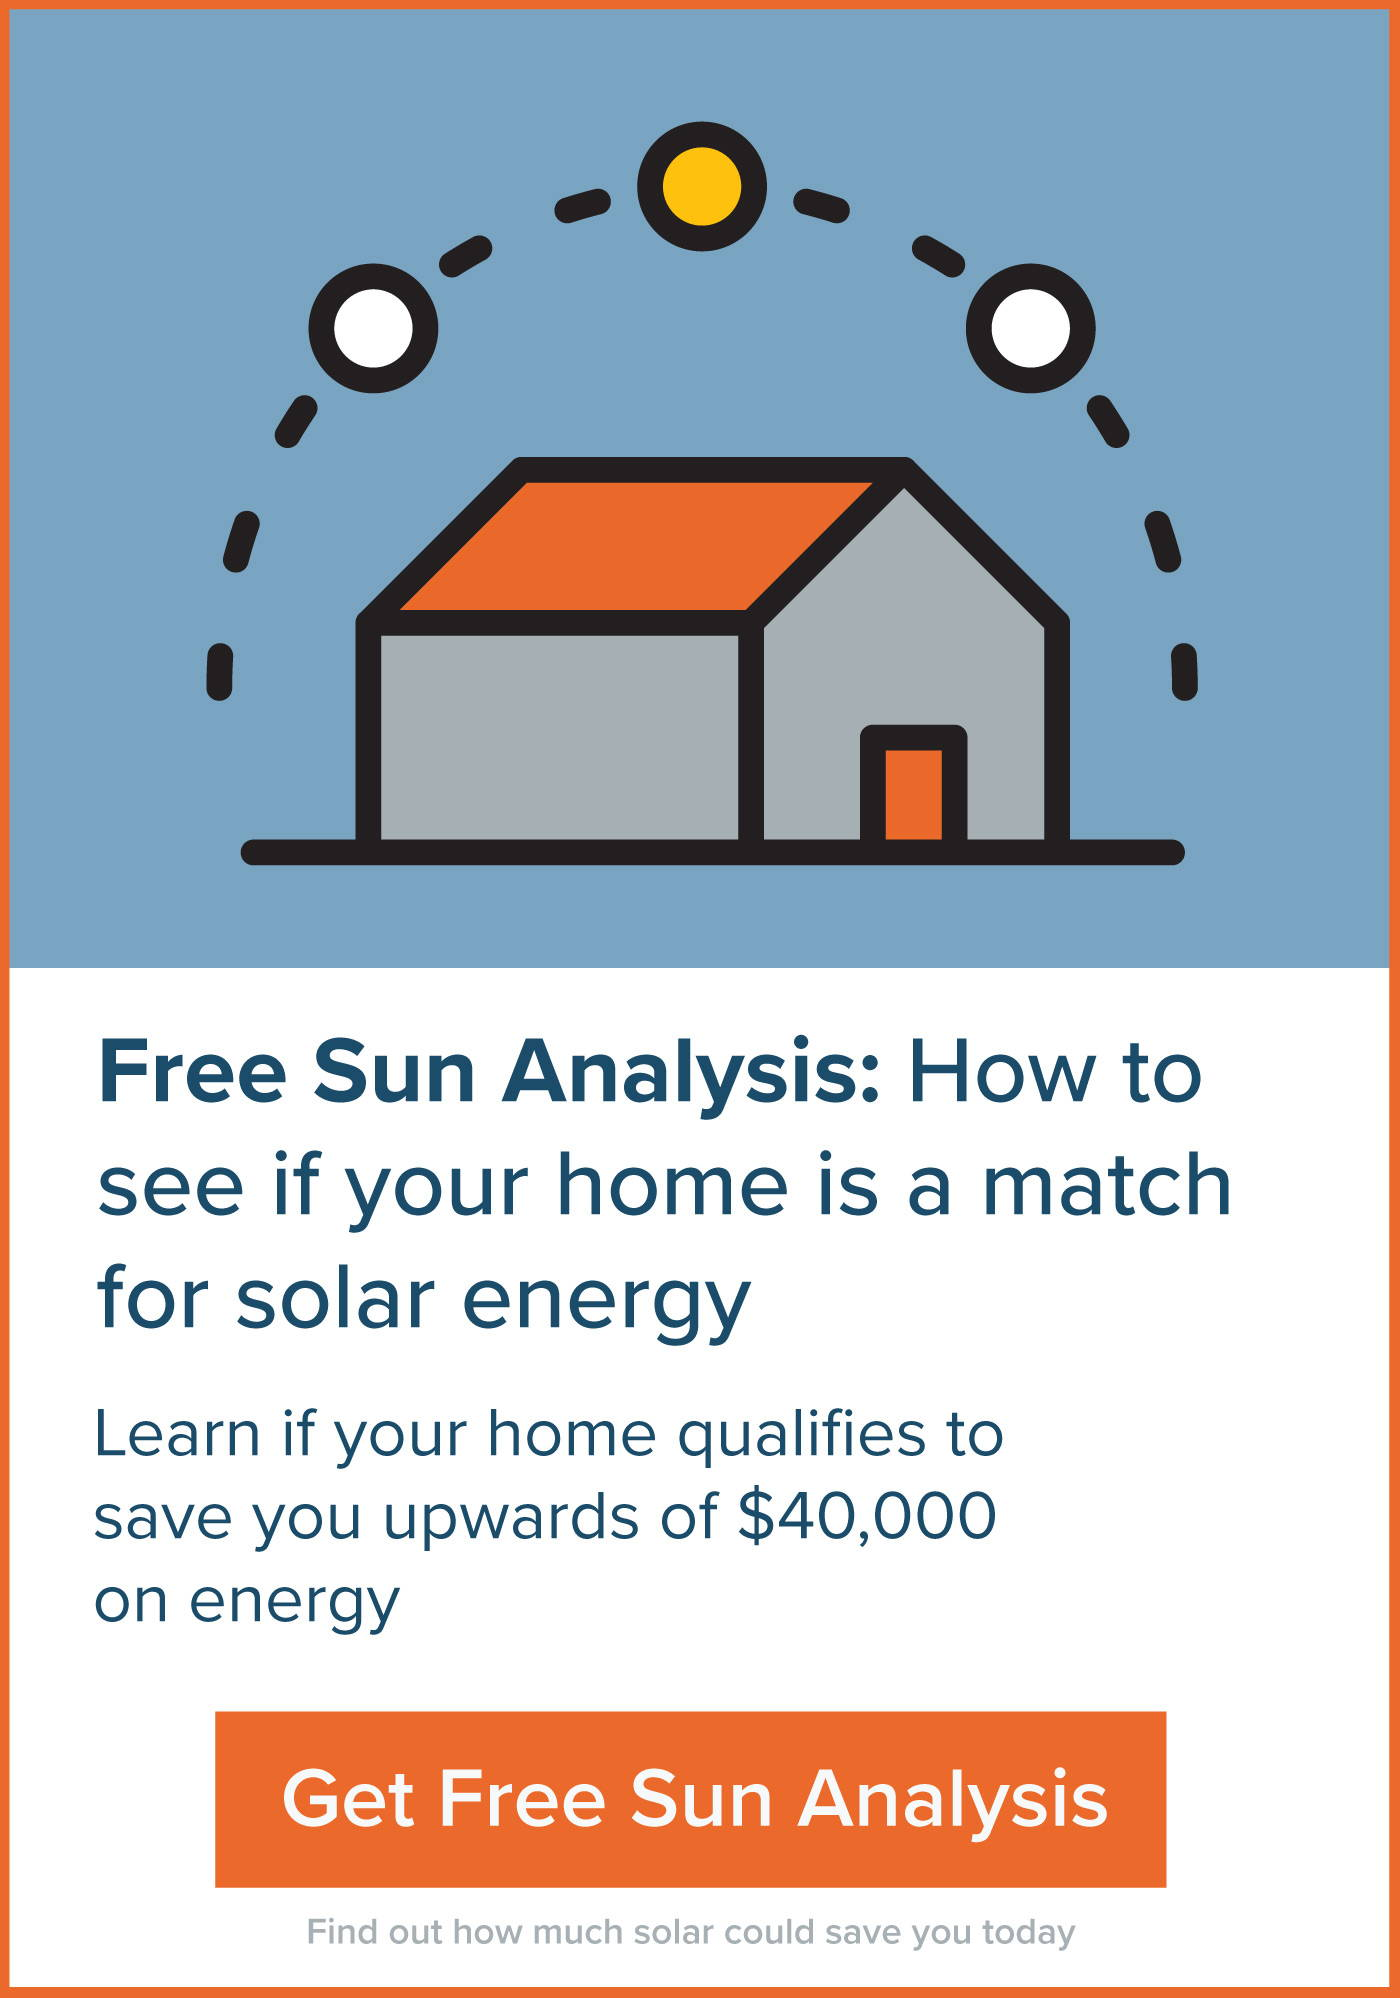 Click here for a free sun analysis